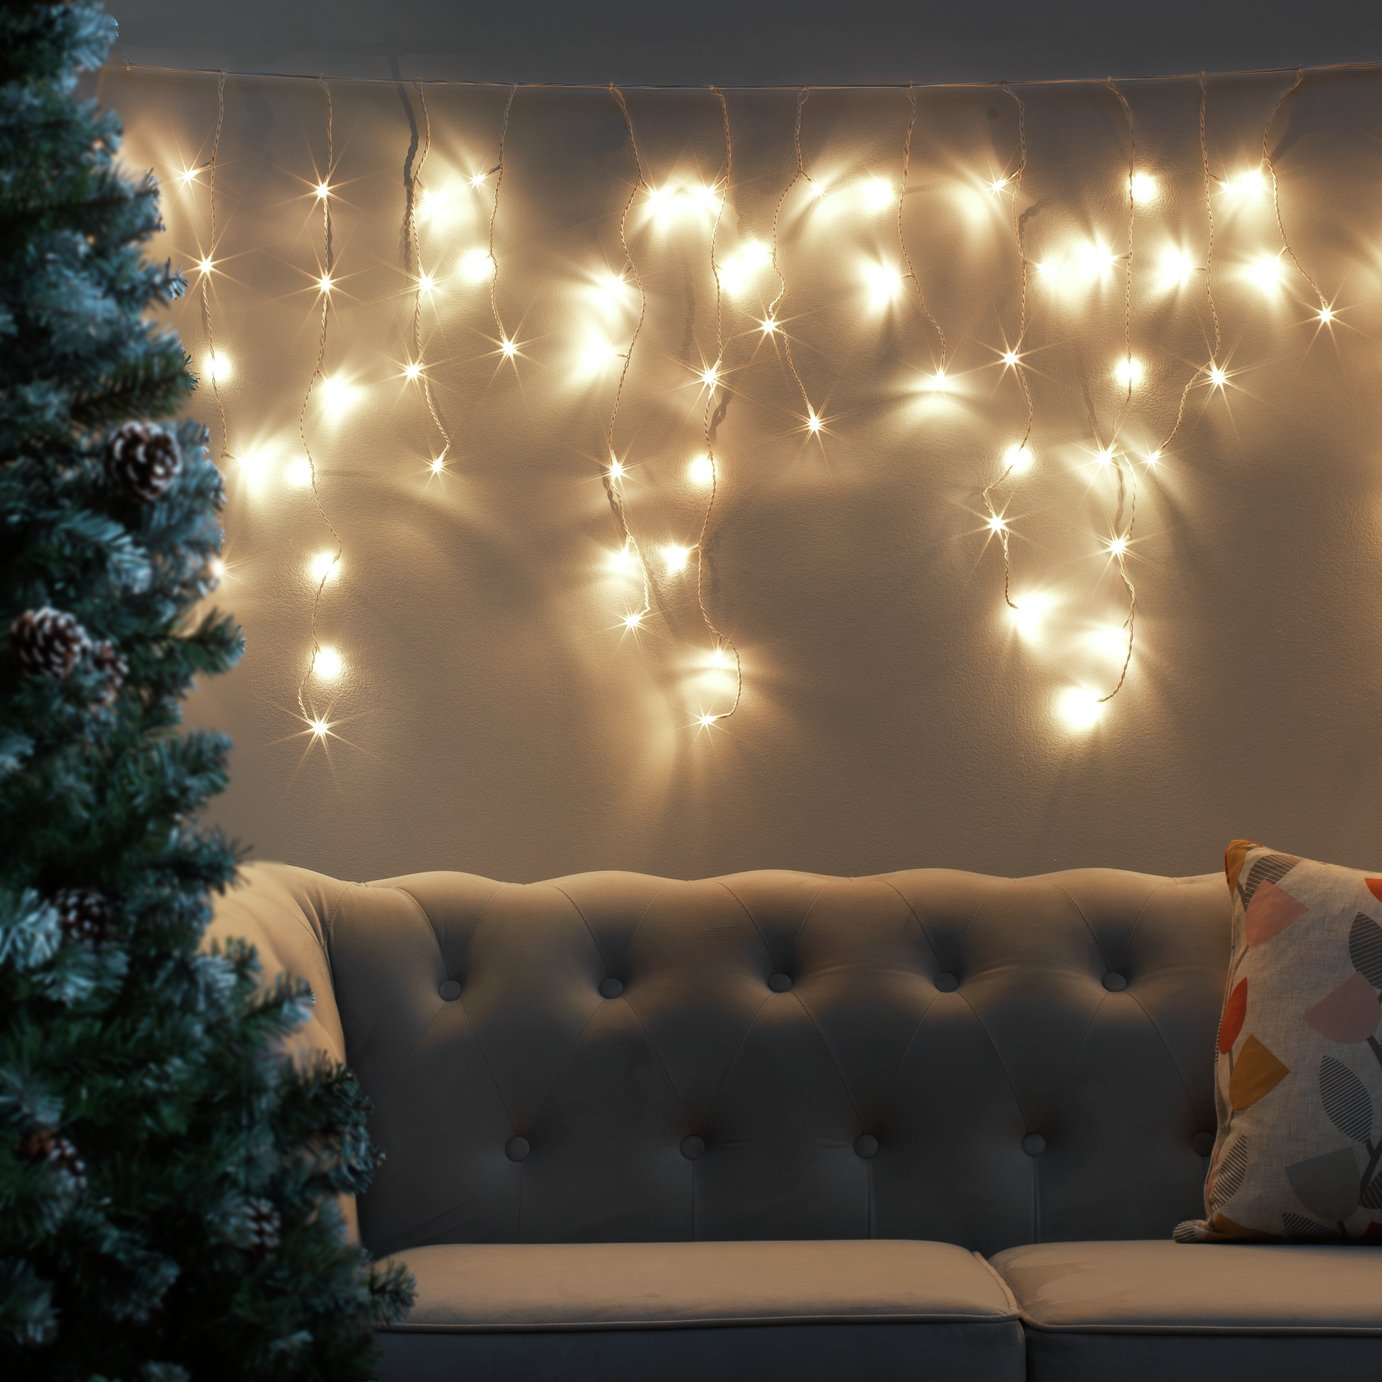 Argos Home Set of 160 Icicle String Lights - Warm White